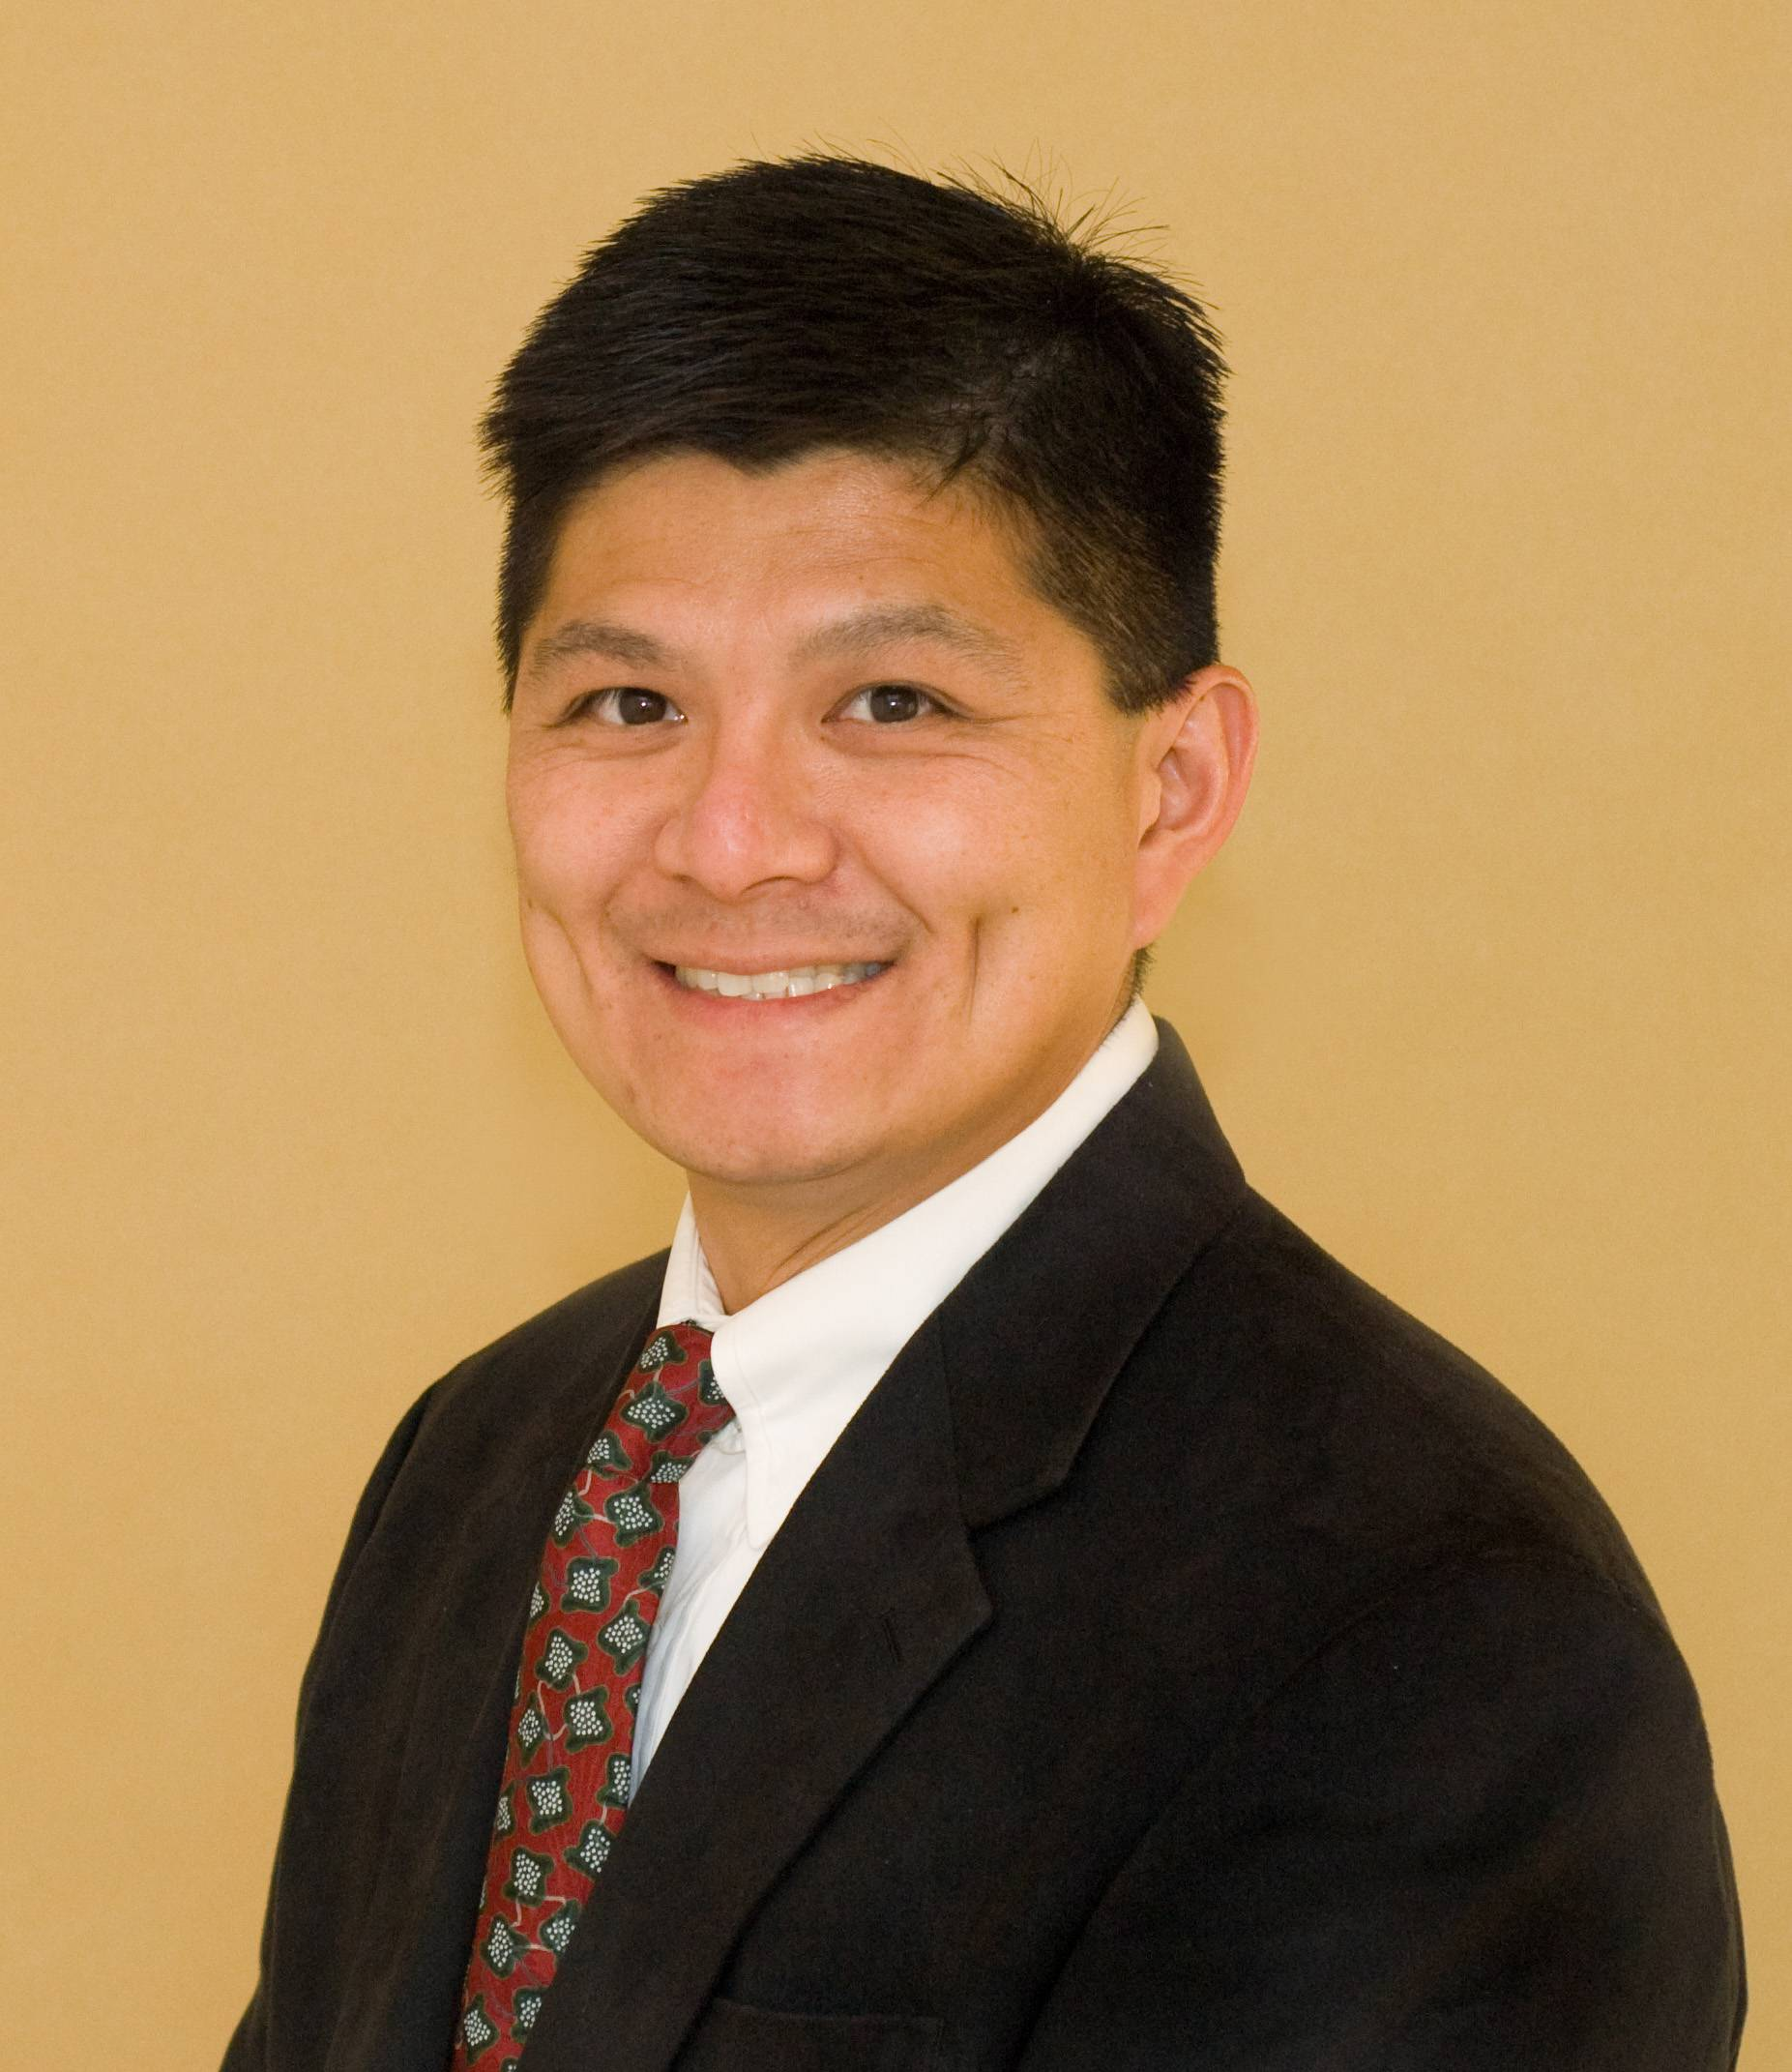 Jay M. Kao, running for Millburn Elementary D24, 4-year term